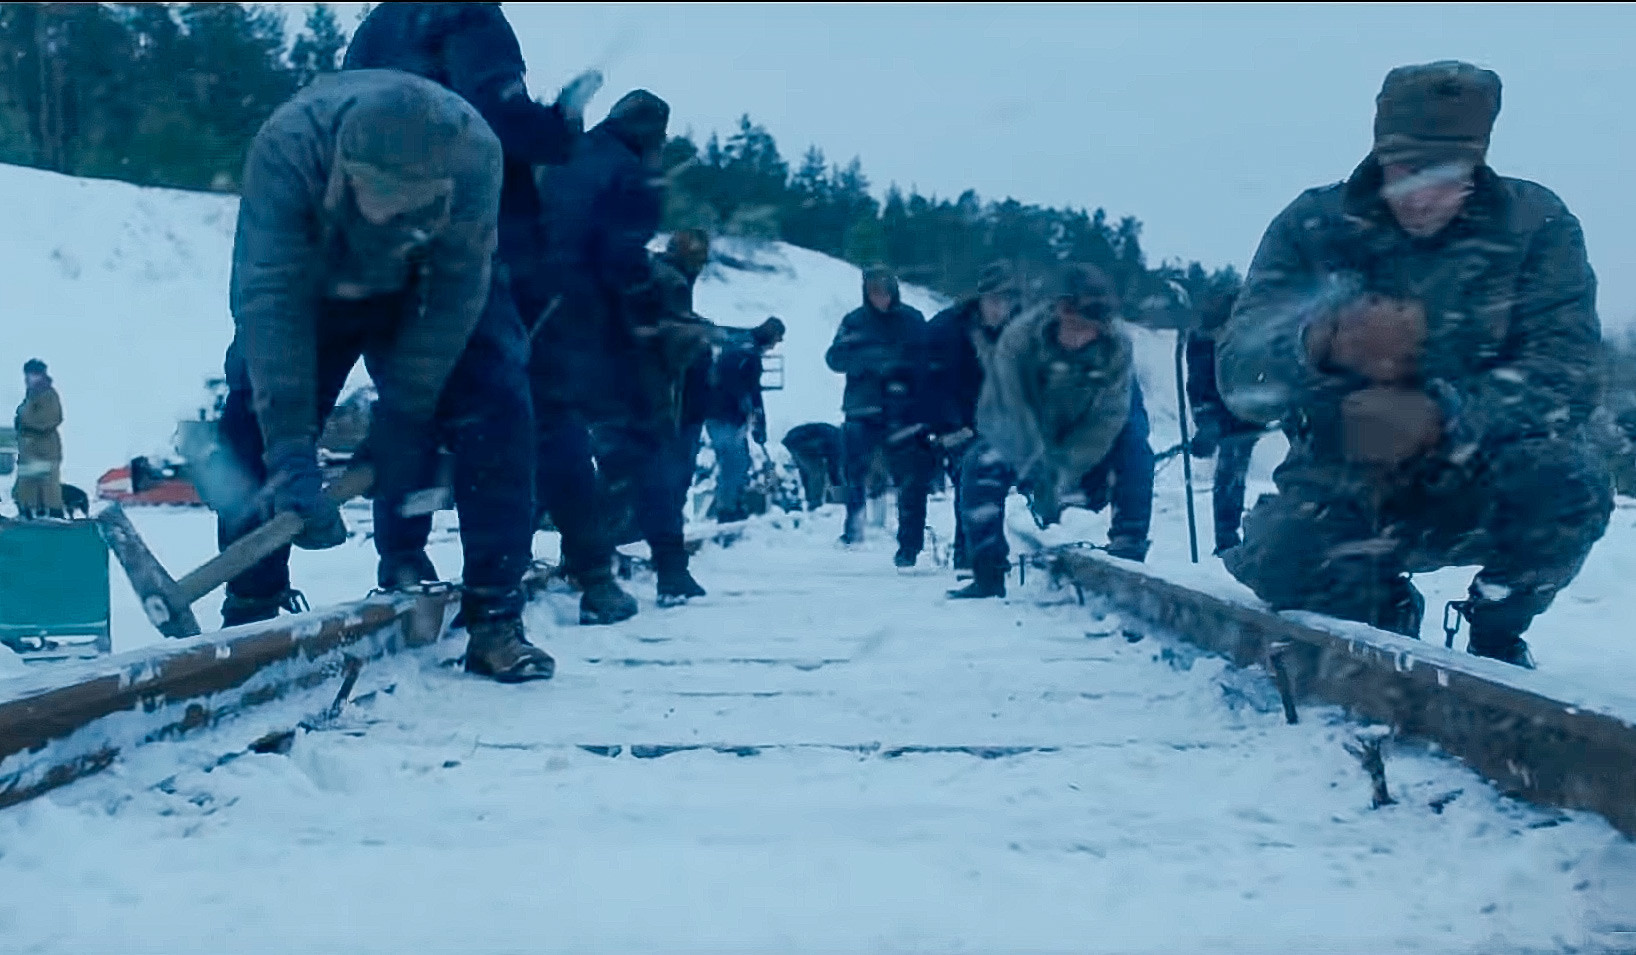 The prisoners definitely are building a railroad, presumably BAM, in official S04 teaser